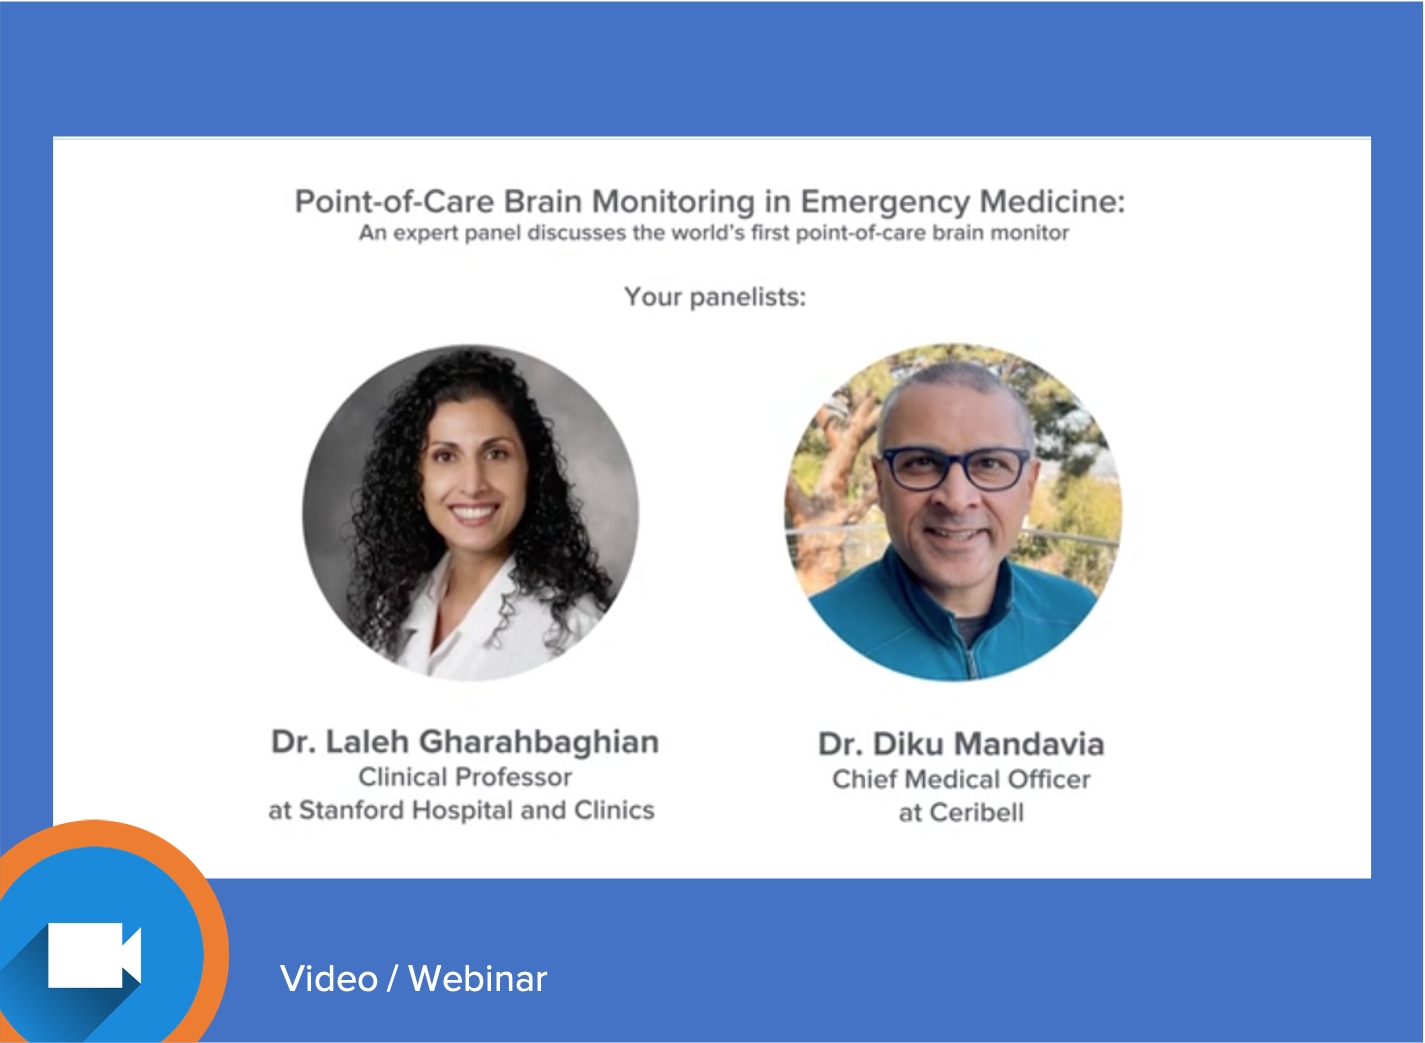 Point-of-Care Brain Monitoring in Emergency Medicine